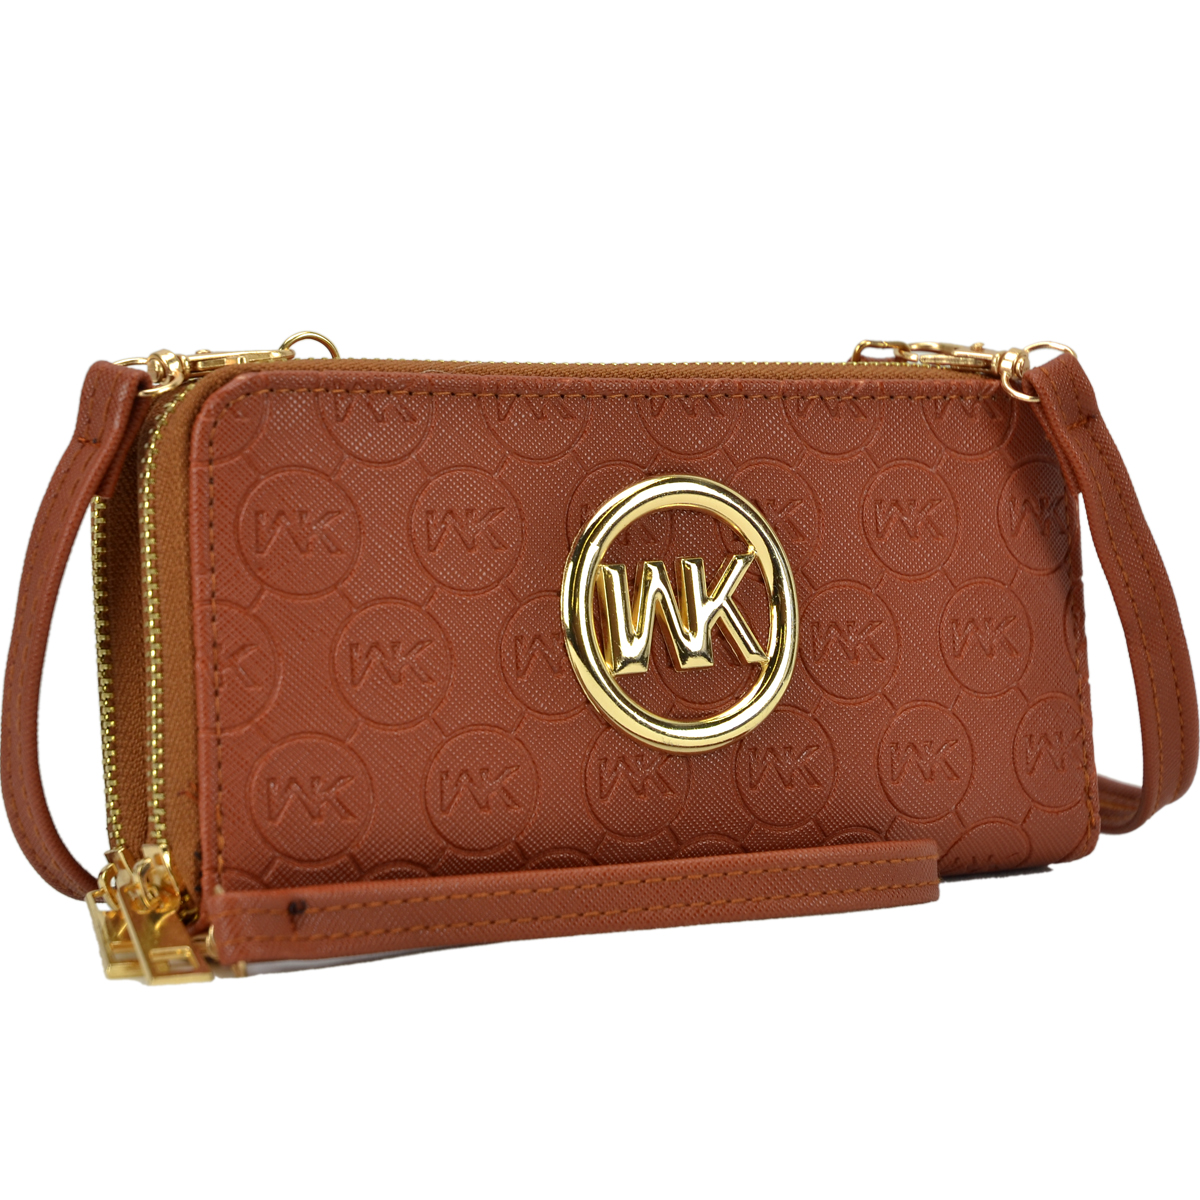 Monogram Logo Emblem Double layer Zip Around Wallet with Shoulder and Wristlet Strap